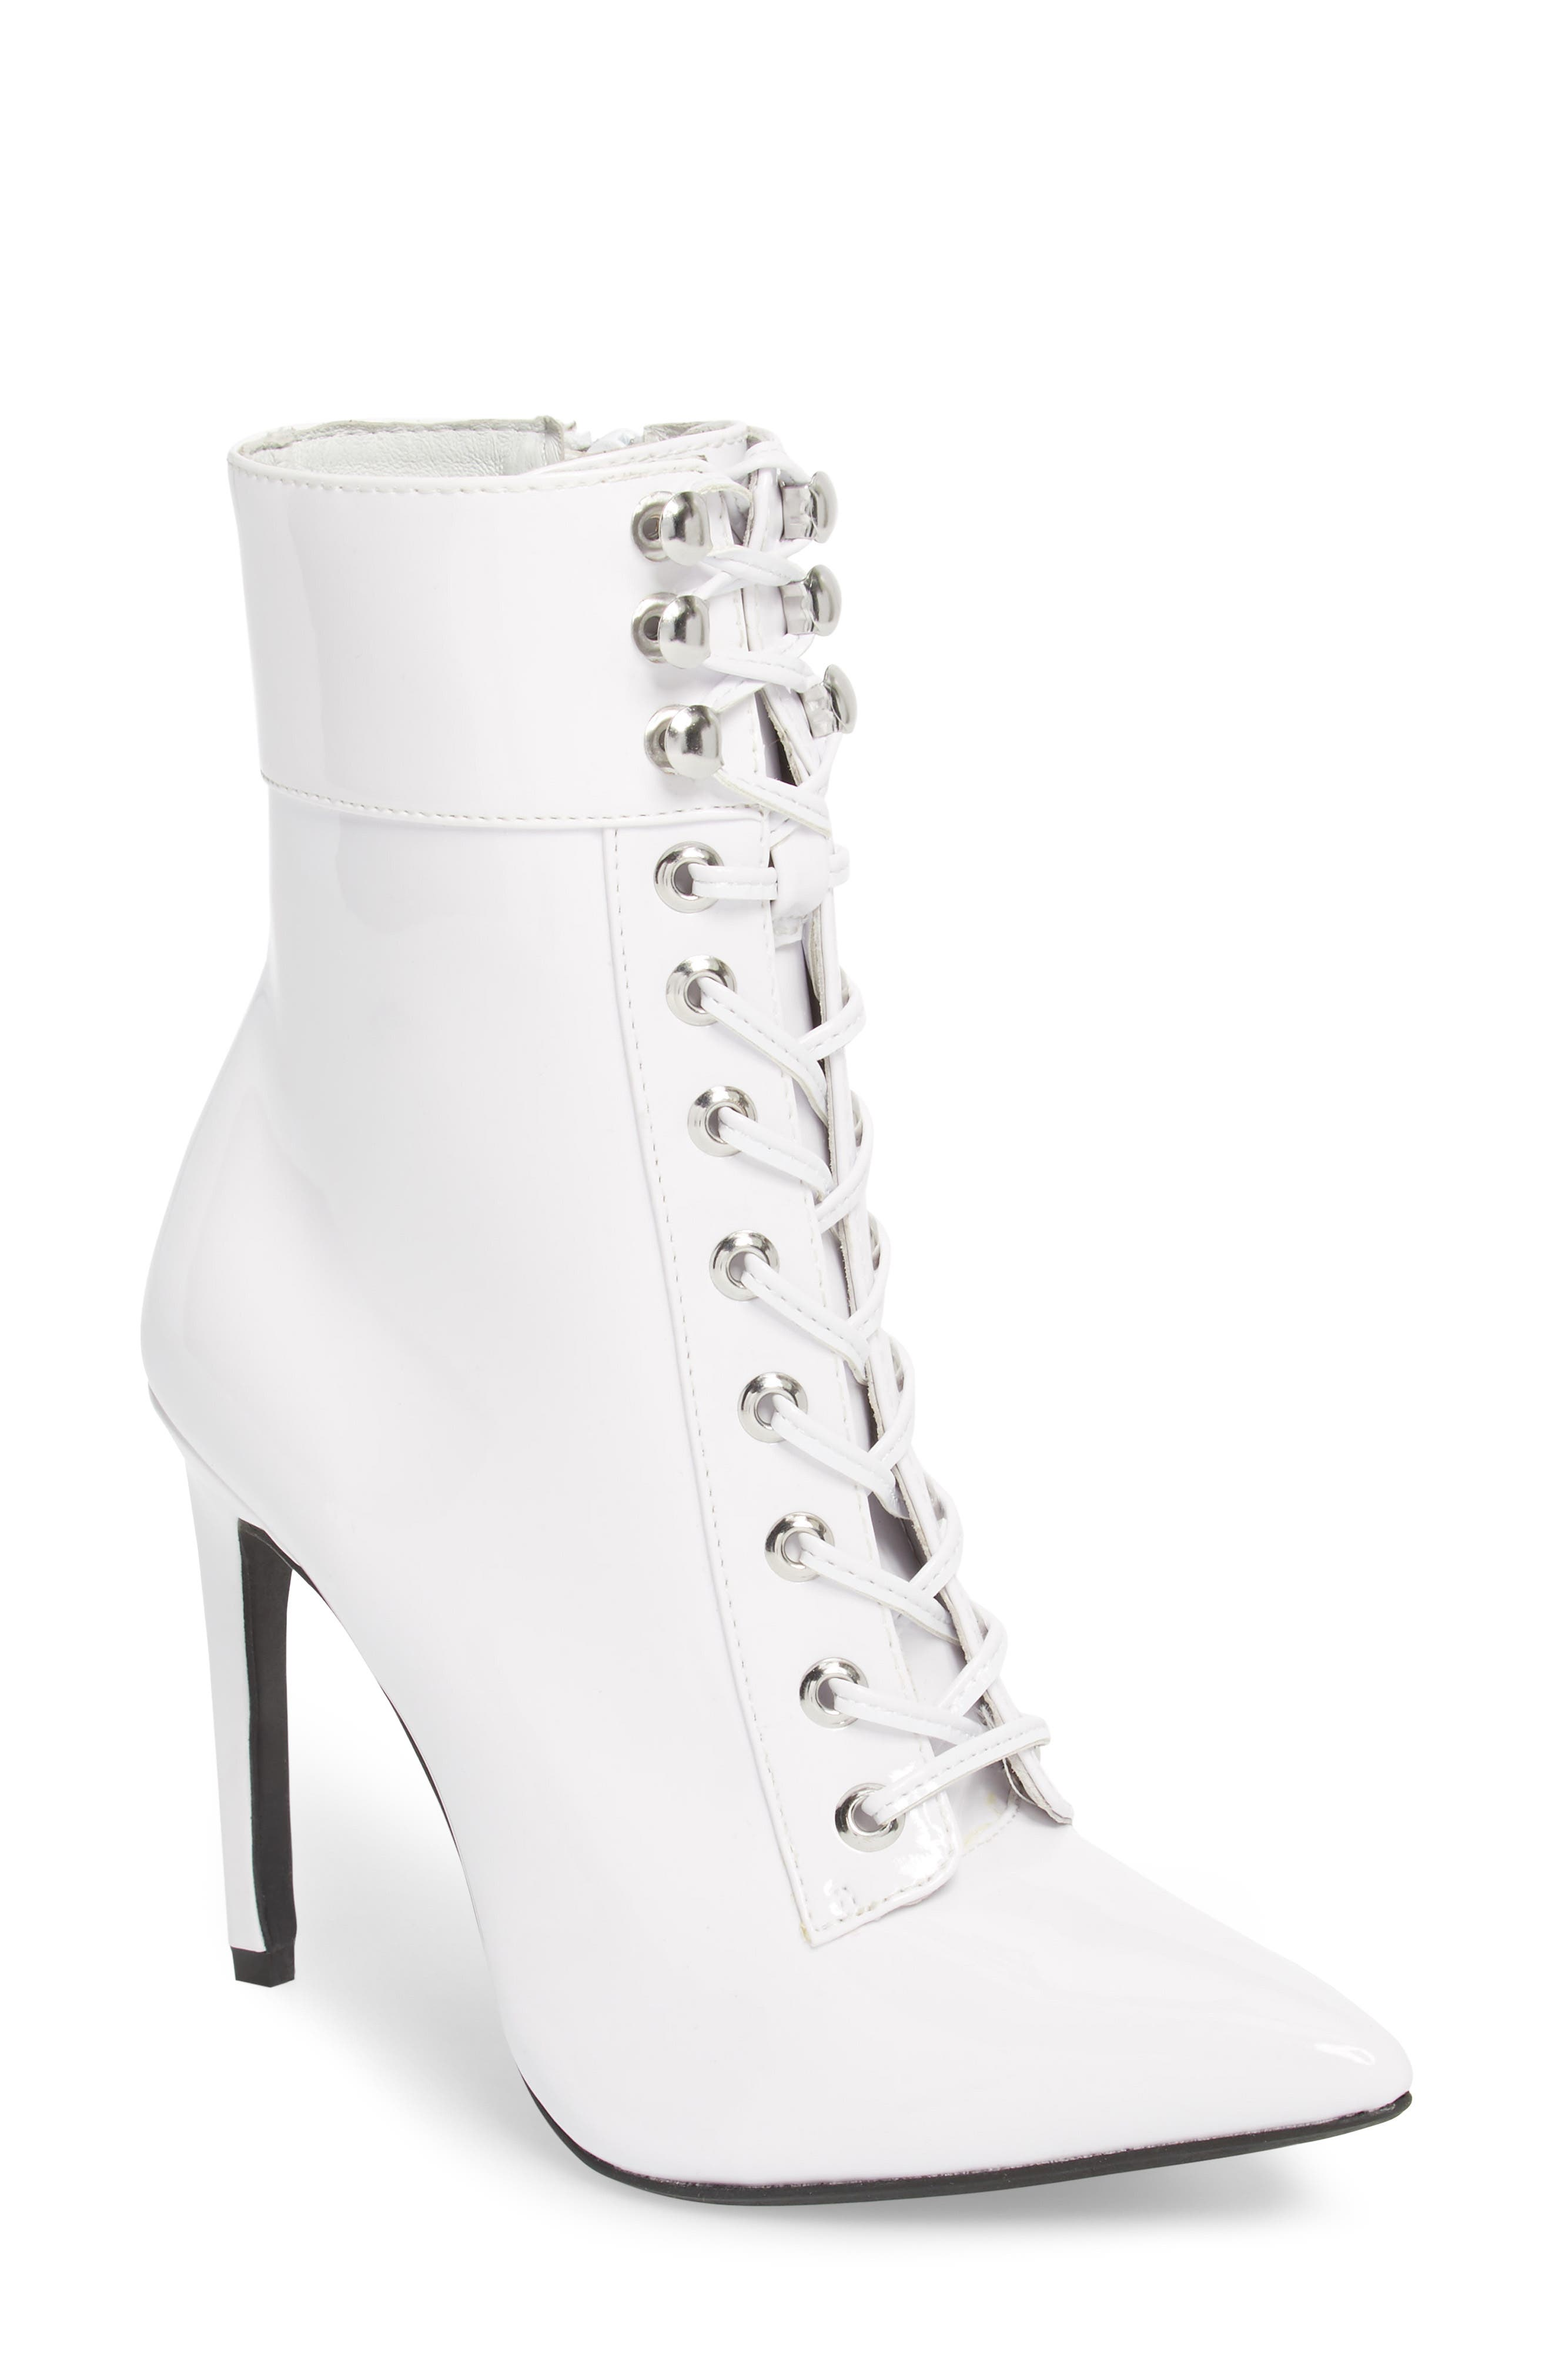 Elphaba-3 Bootie,                         Main,                         color, White Patent